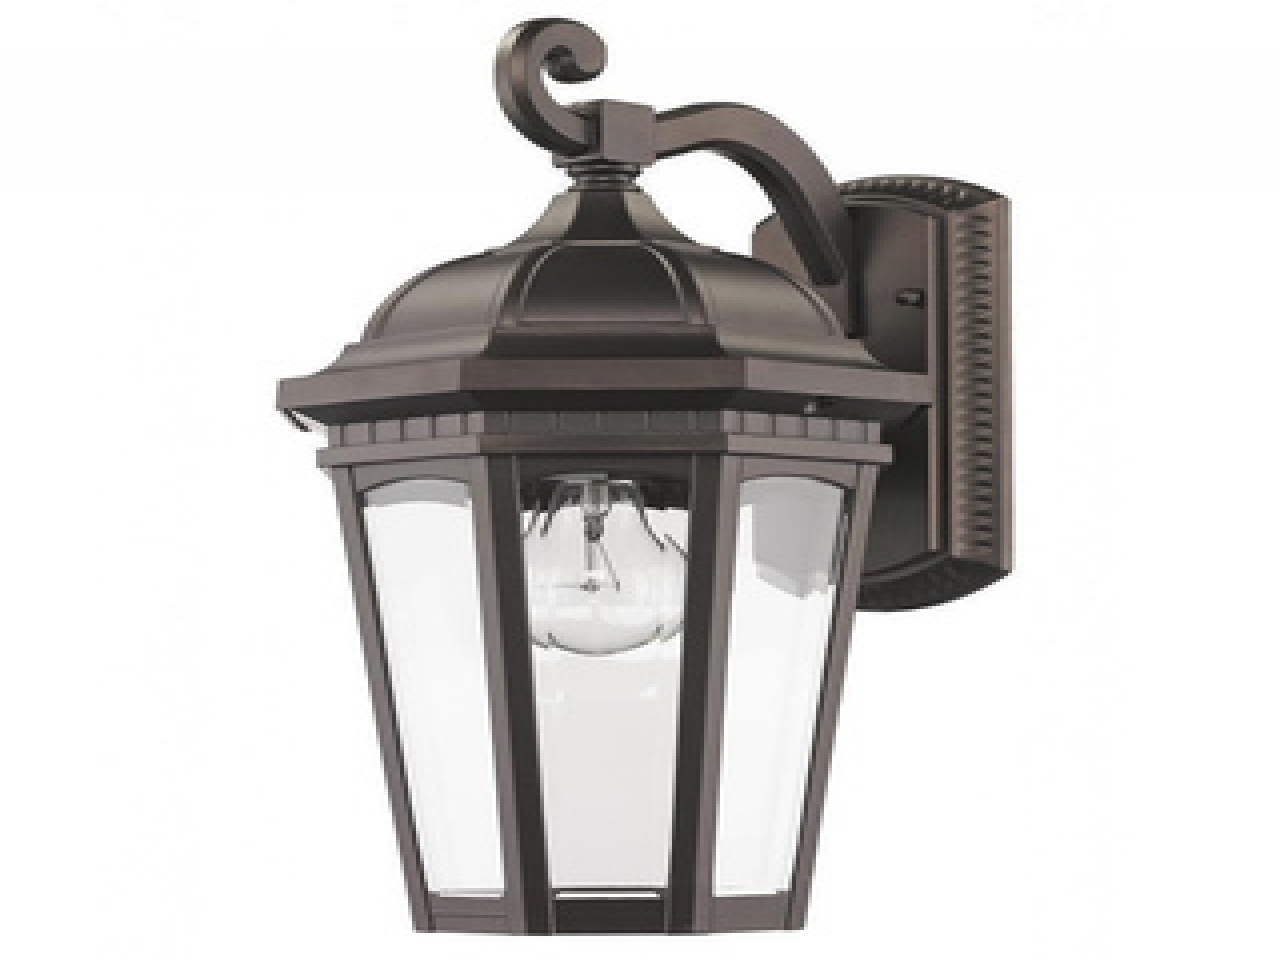 Outdoor Wall Mounted Lighting Inside Most Popular Light : Lantern Outdoor Wall Mount Lights Simple White Decoration (View 5 of 20)